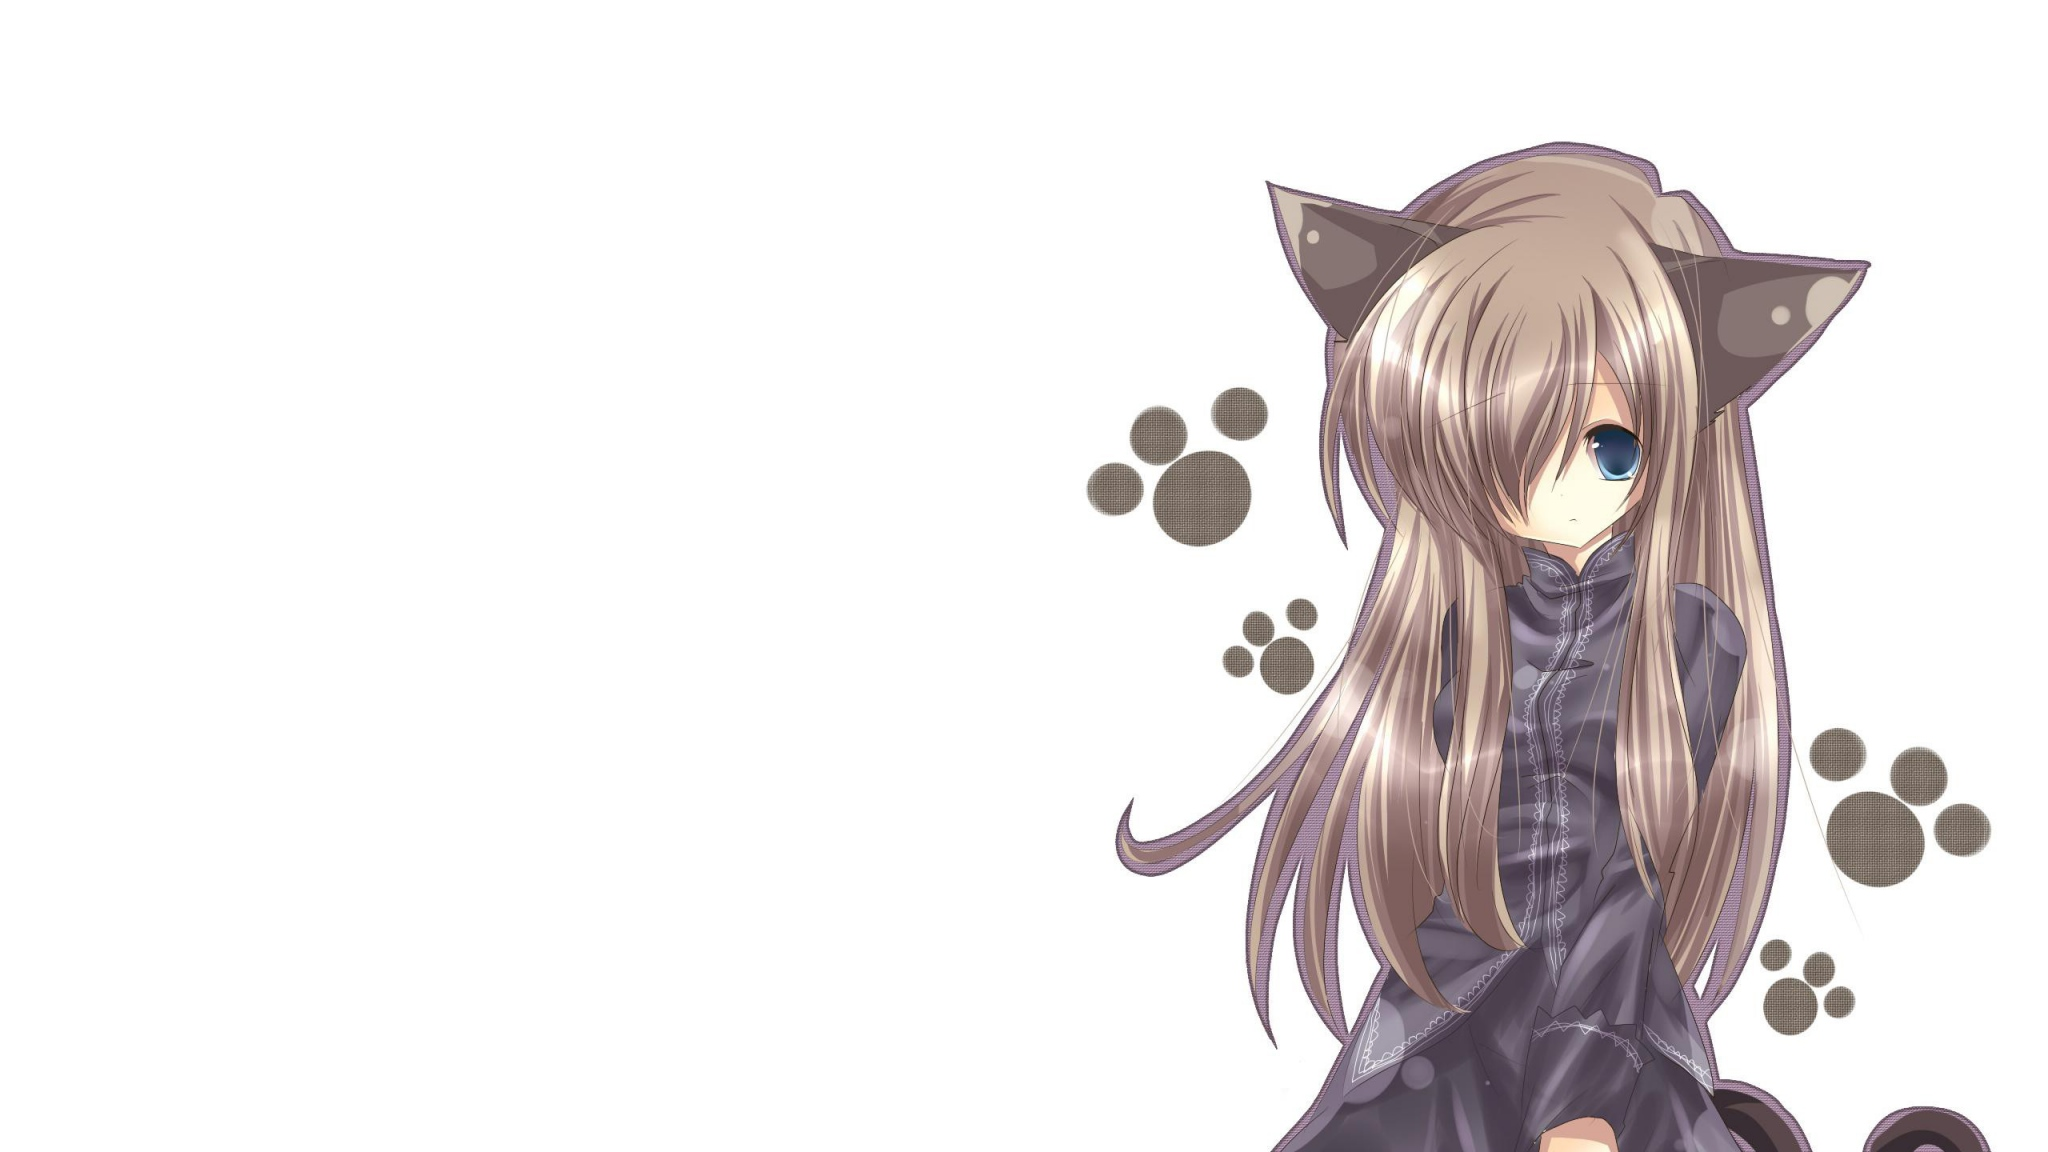 Free Download Download 2048x1152 Cat Girl Nekomimi Art Anime Girl